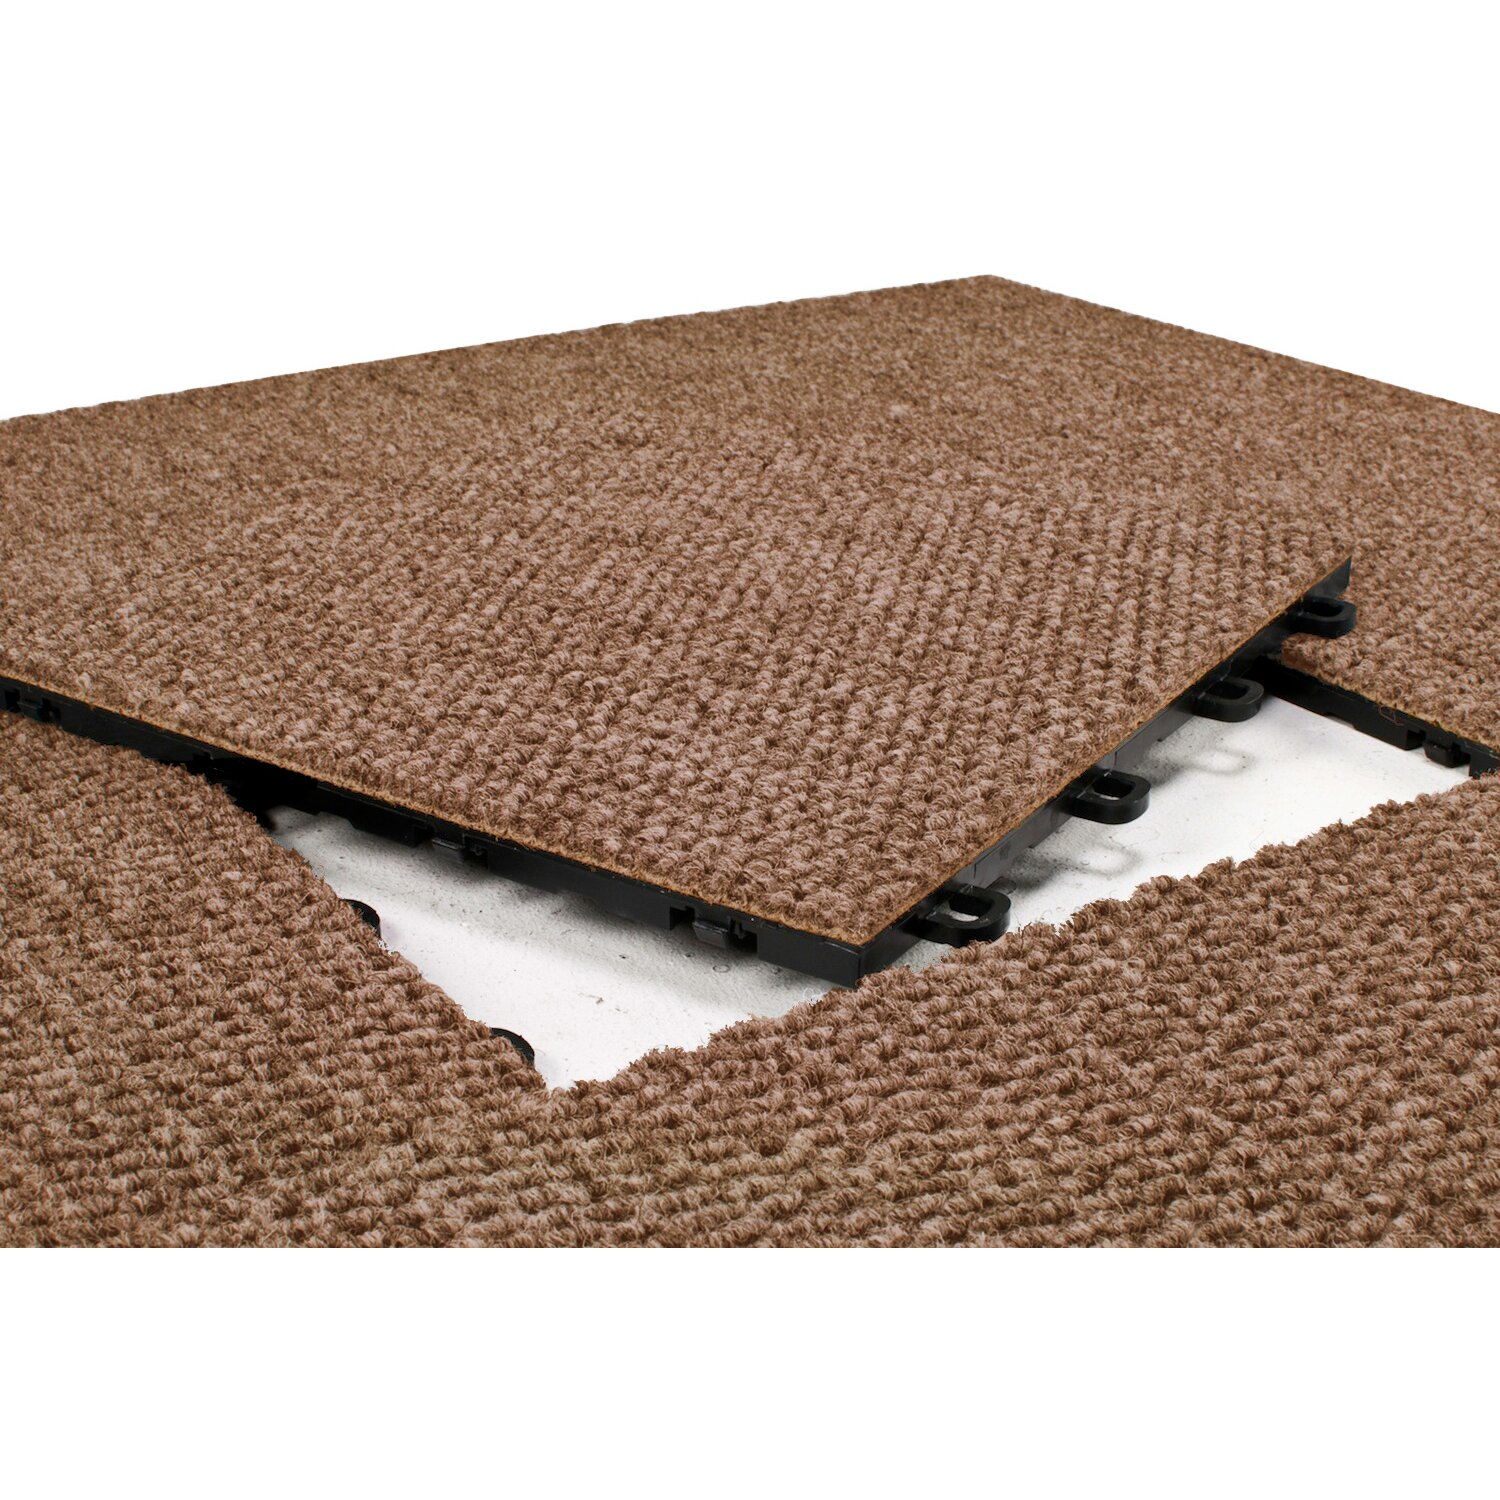 "How To Carpet A Basement Floor: BlockTile 12"" X 12"" Premium Interlocking Basement Floor Carpet Tile In Brown & Reviews"